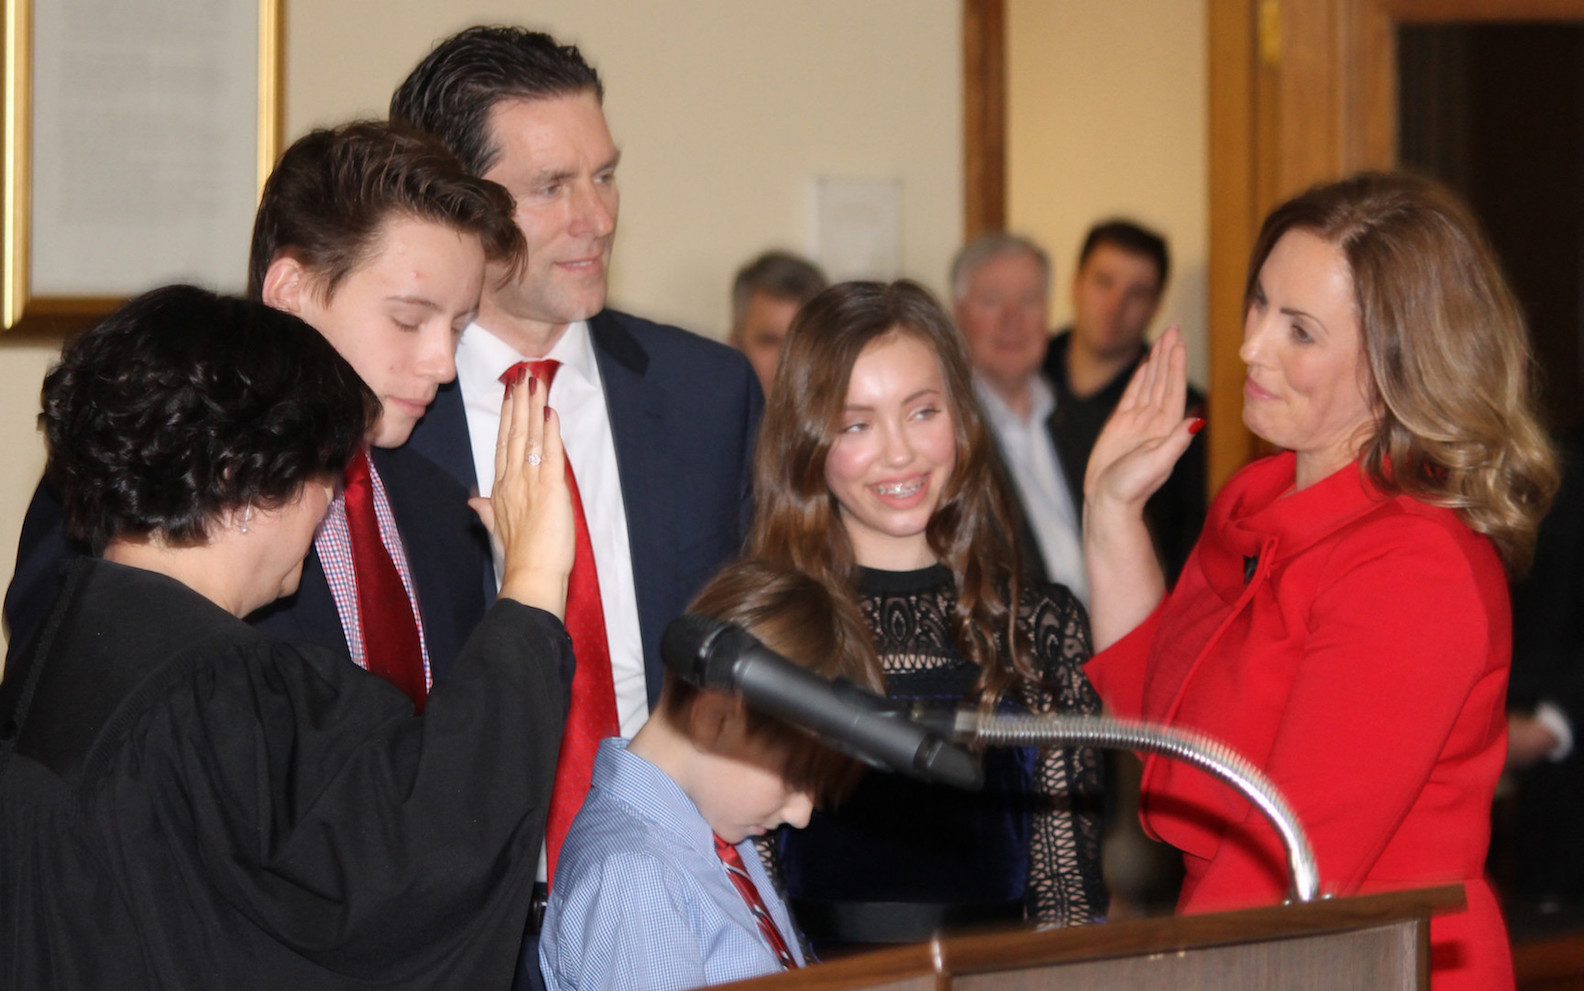 Niagara County District Attorney Caroline A. Wojtaszek is sworn in at the Niagara County Courthouse by County Judge Sara Sheldon Dec. 31 as her husband, Henry, daughter, Katie, and sons Jack and Ryan look on. Wojtaszek previously served as Sheldon's law clerk.